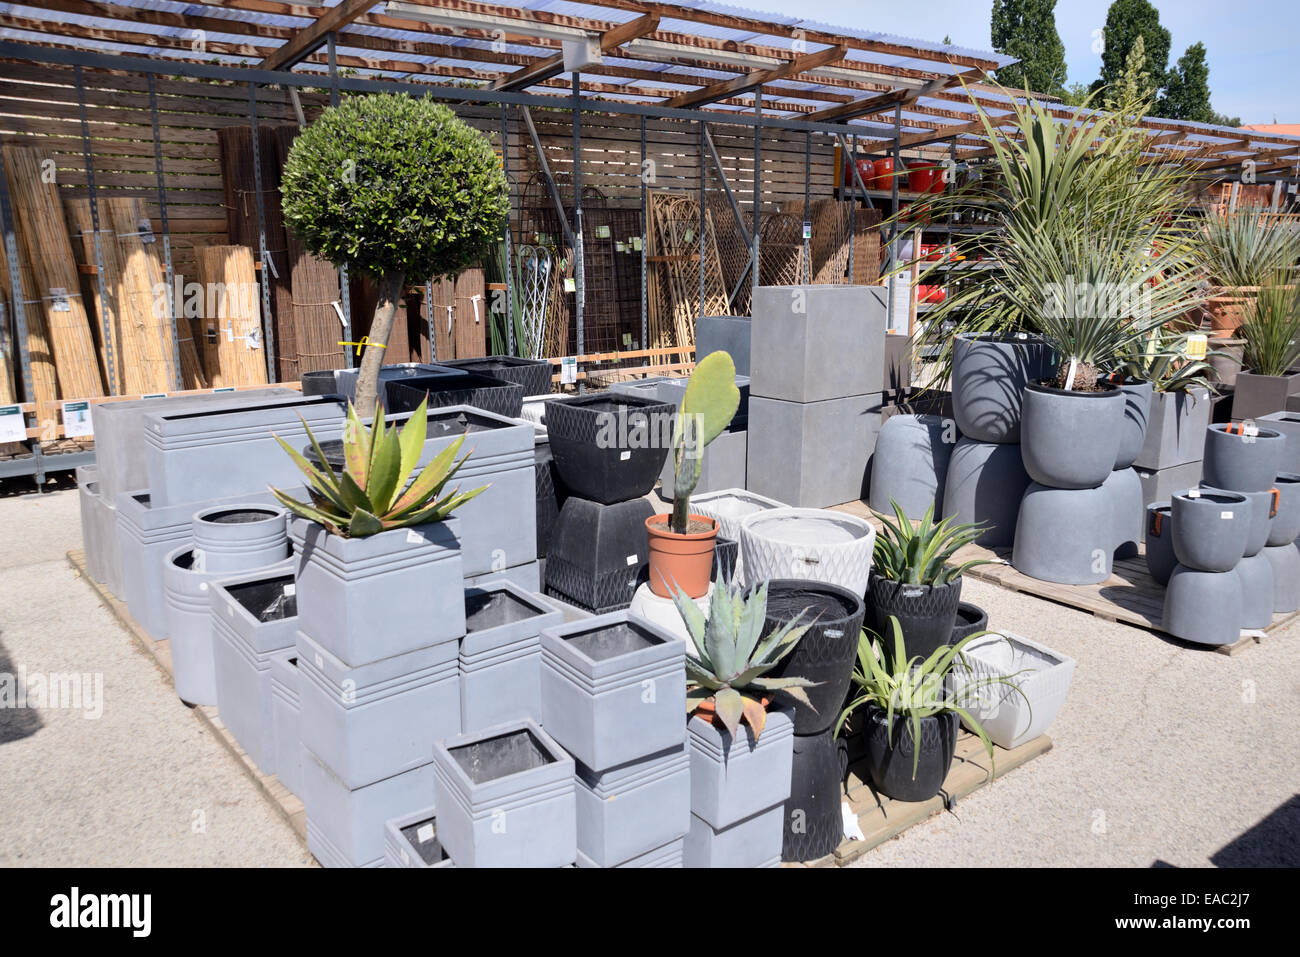 Display Of Gray Or Grey Planters Or Plant Pots For Sale In Garden Center Or  Garden Centre